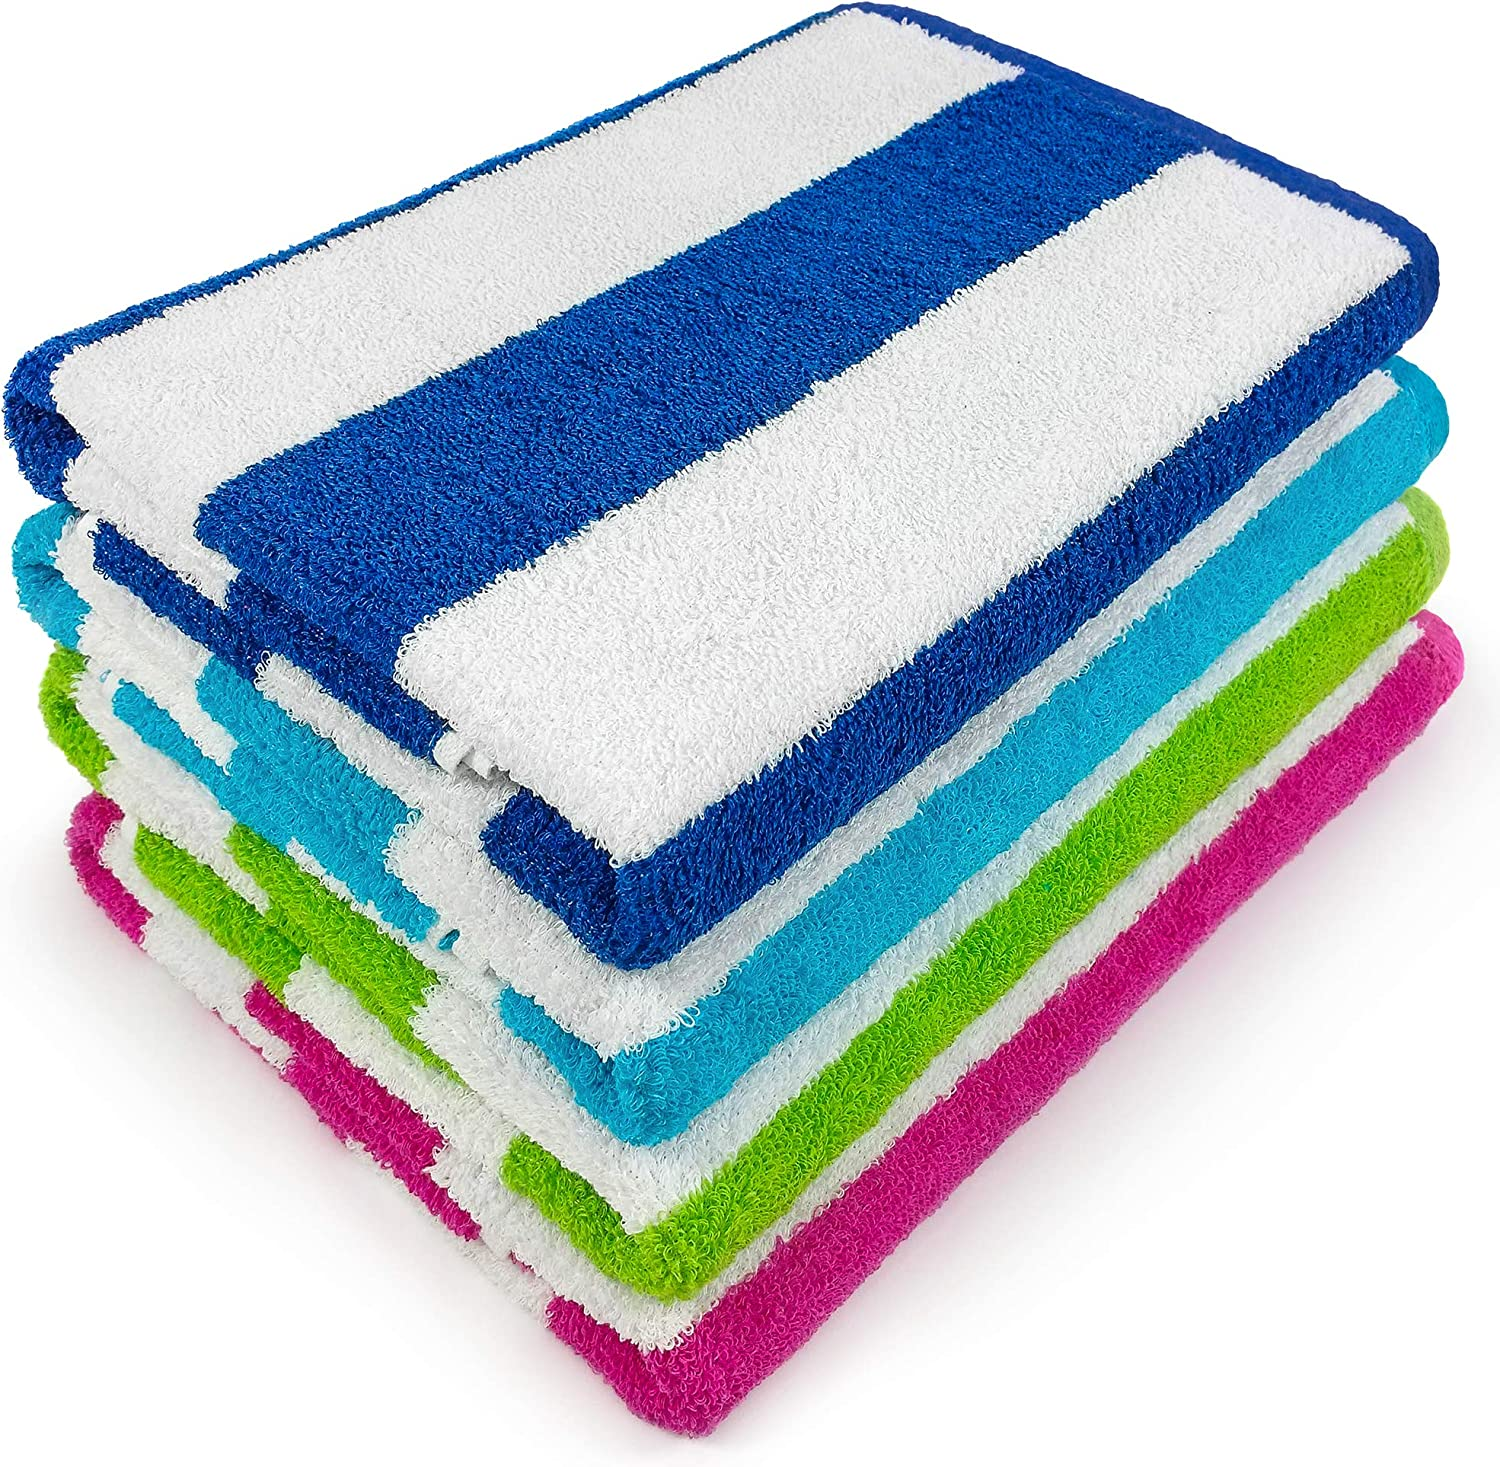 Extra Soft Beach Towel 32 x 62 inch 4 Pack Hotel Pool & Resort Style Terry 100% Cotton